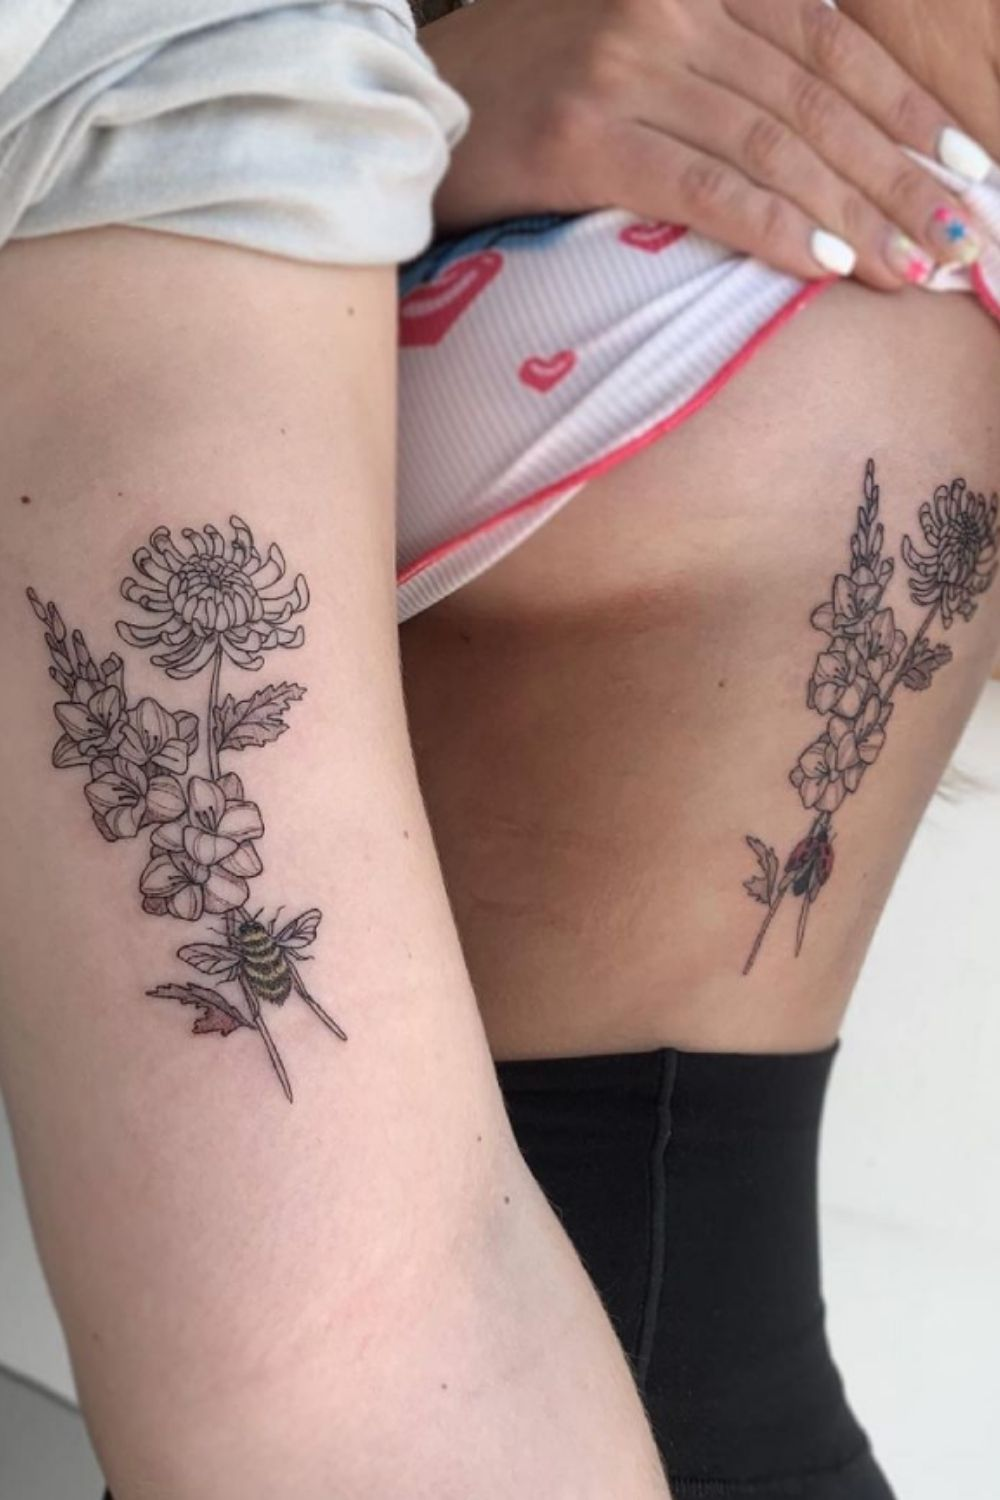 Best friend tattoo | tattoos to Celebrate your special bond